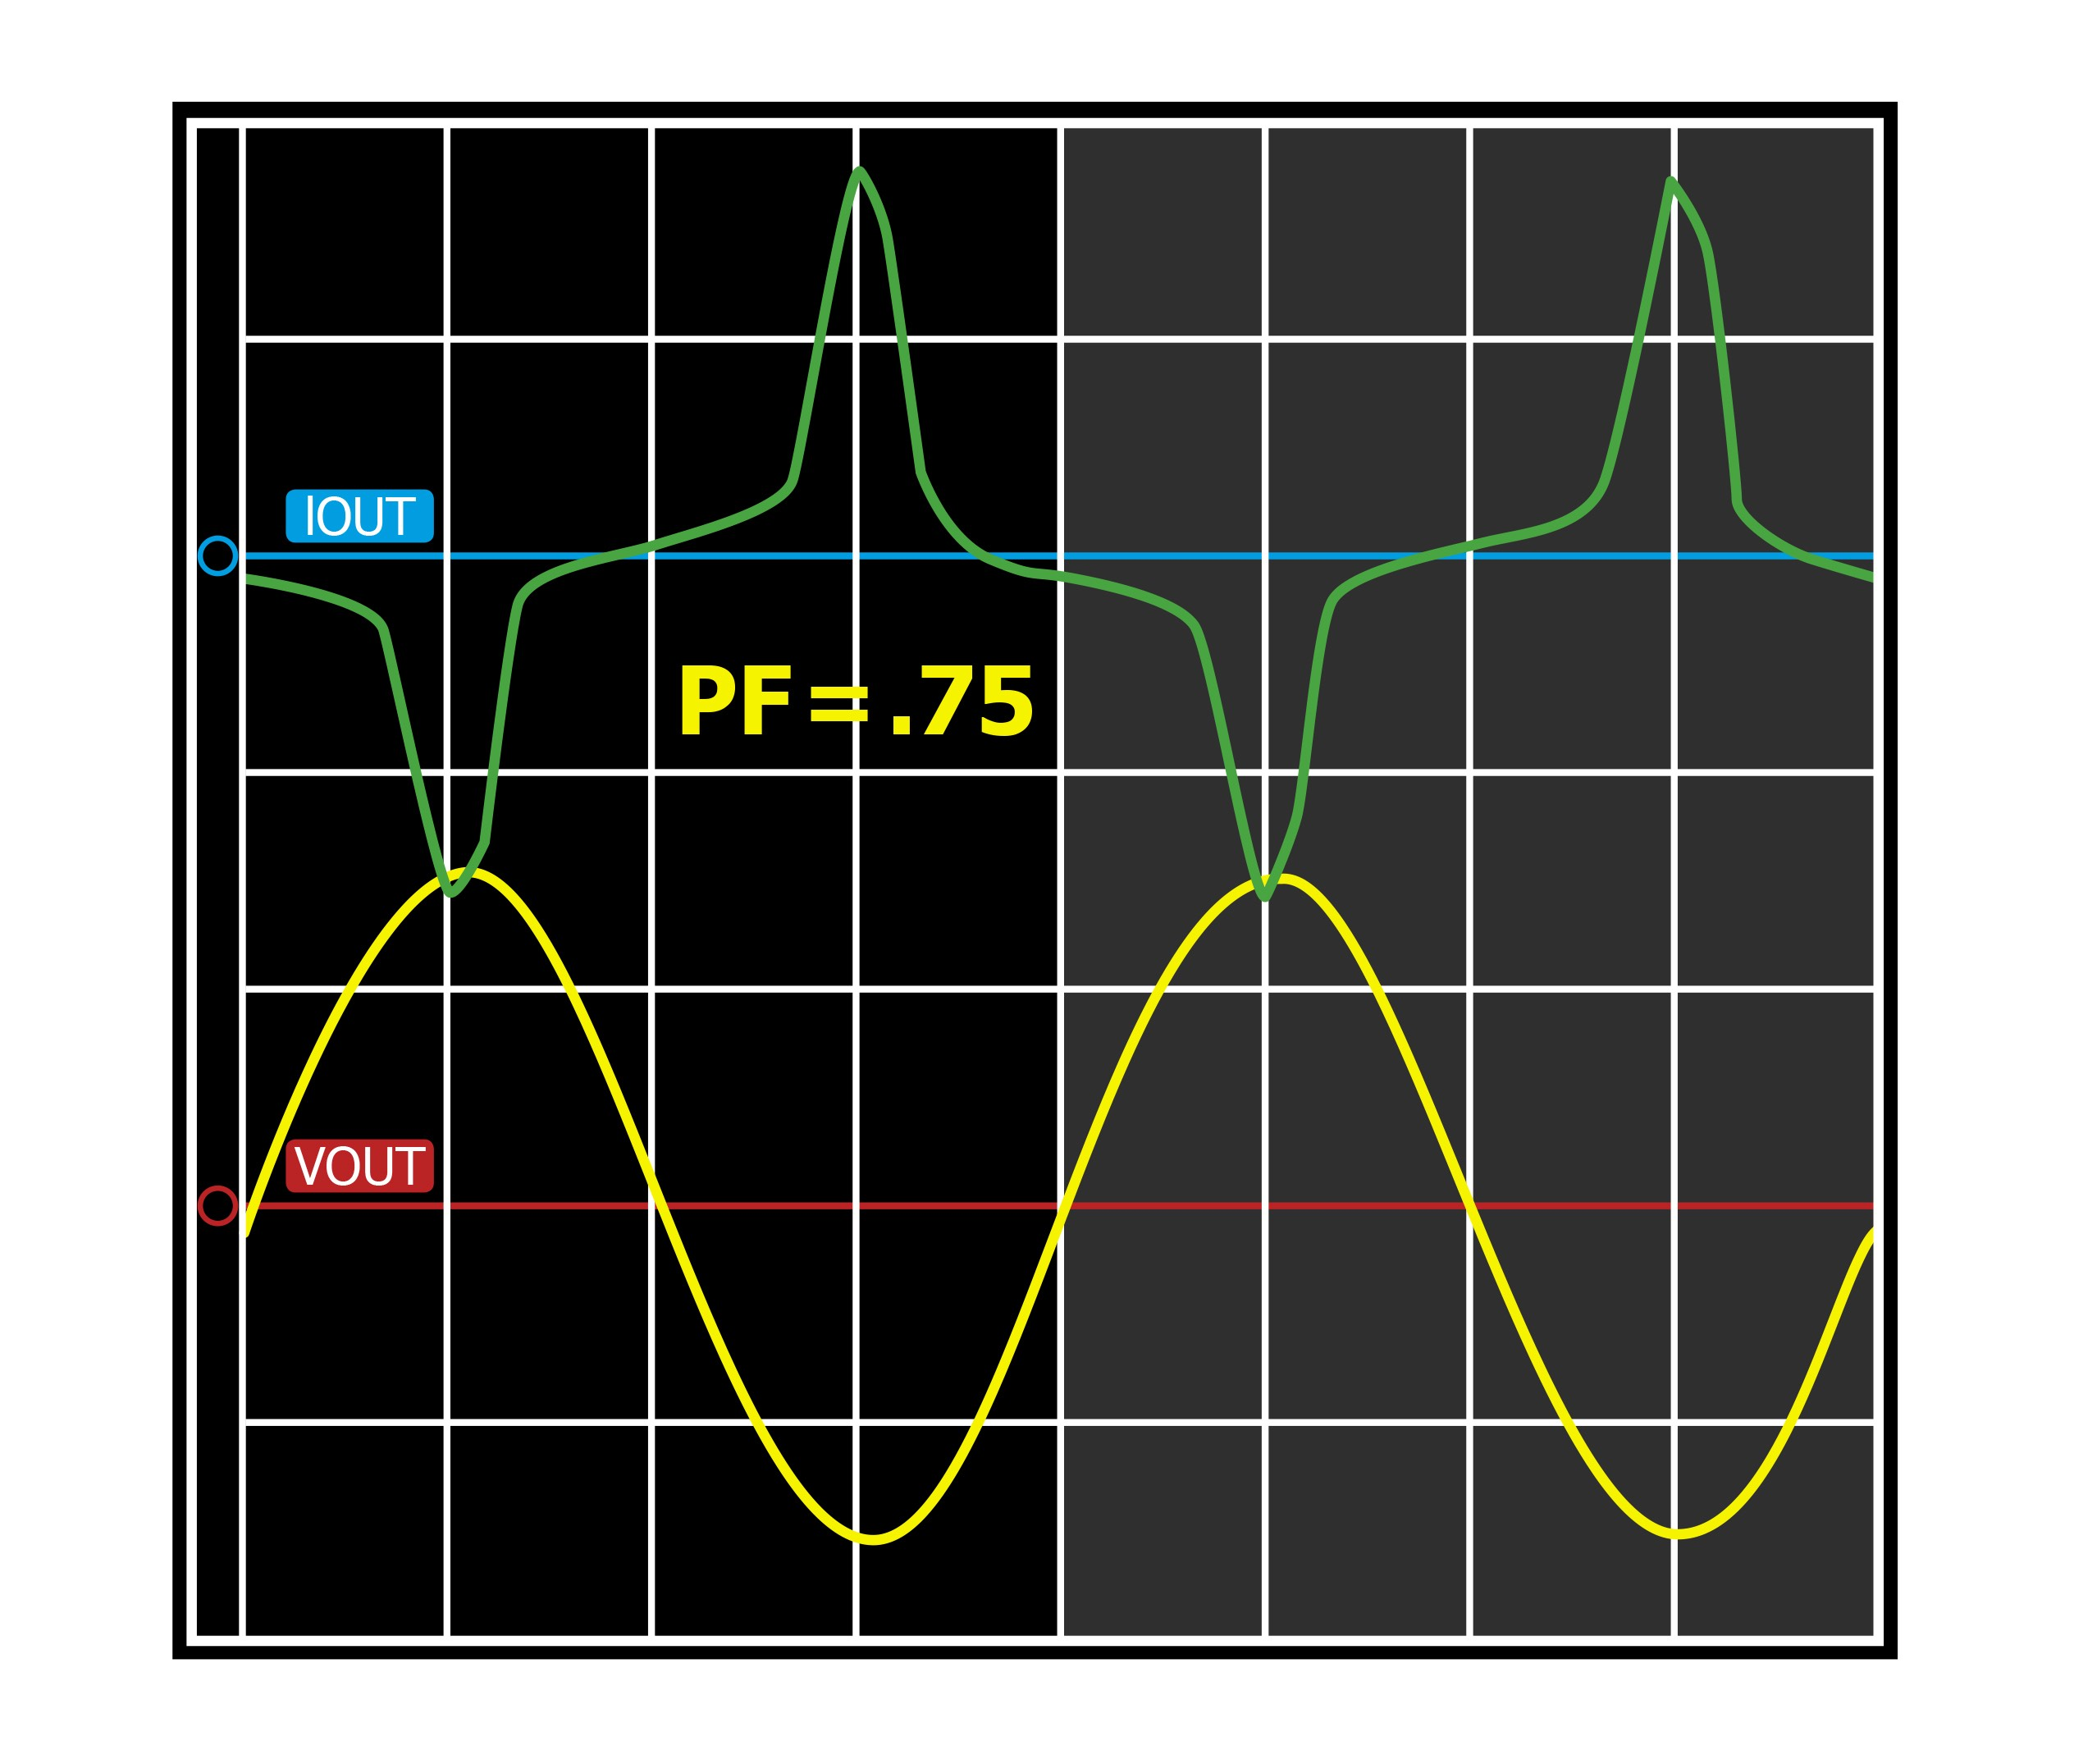 non linear relationship between voltage and current phase